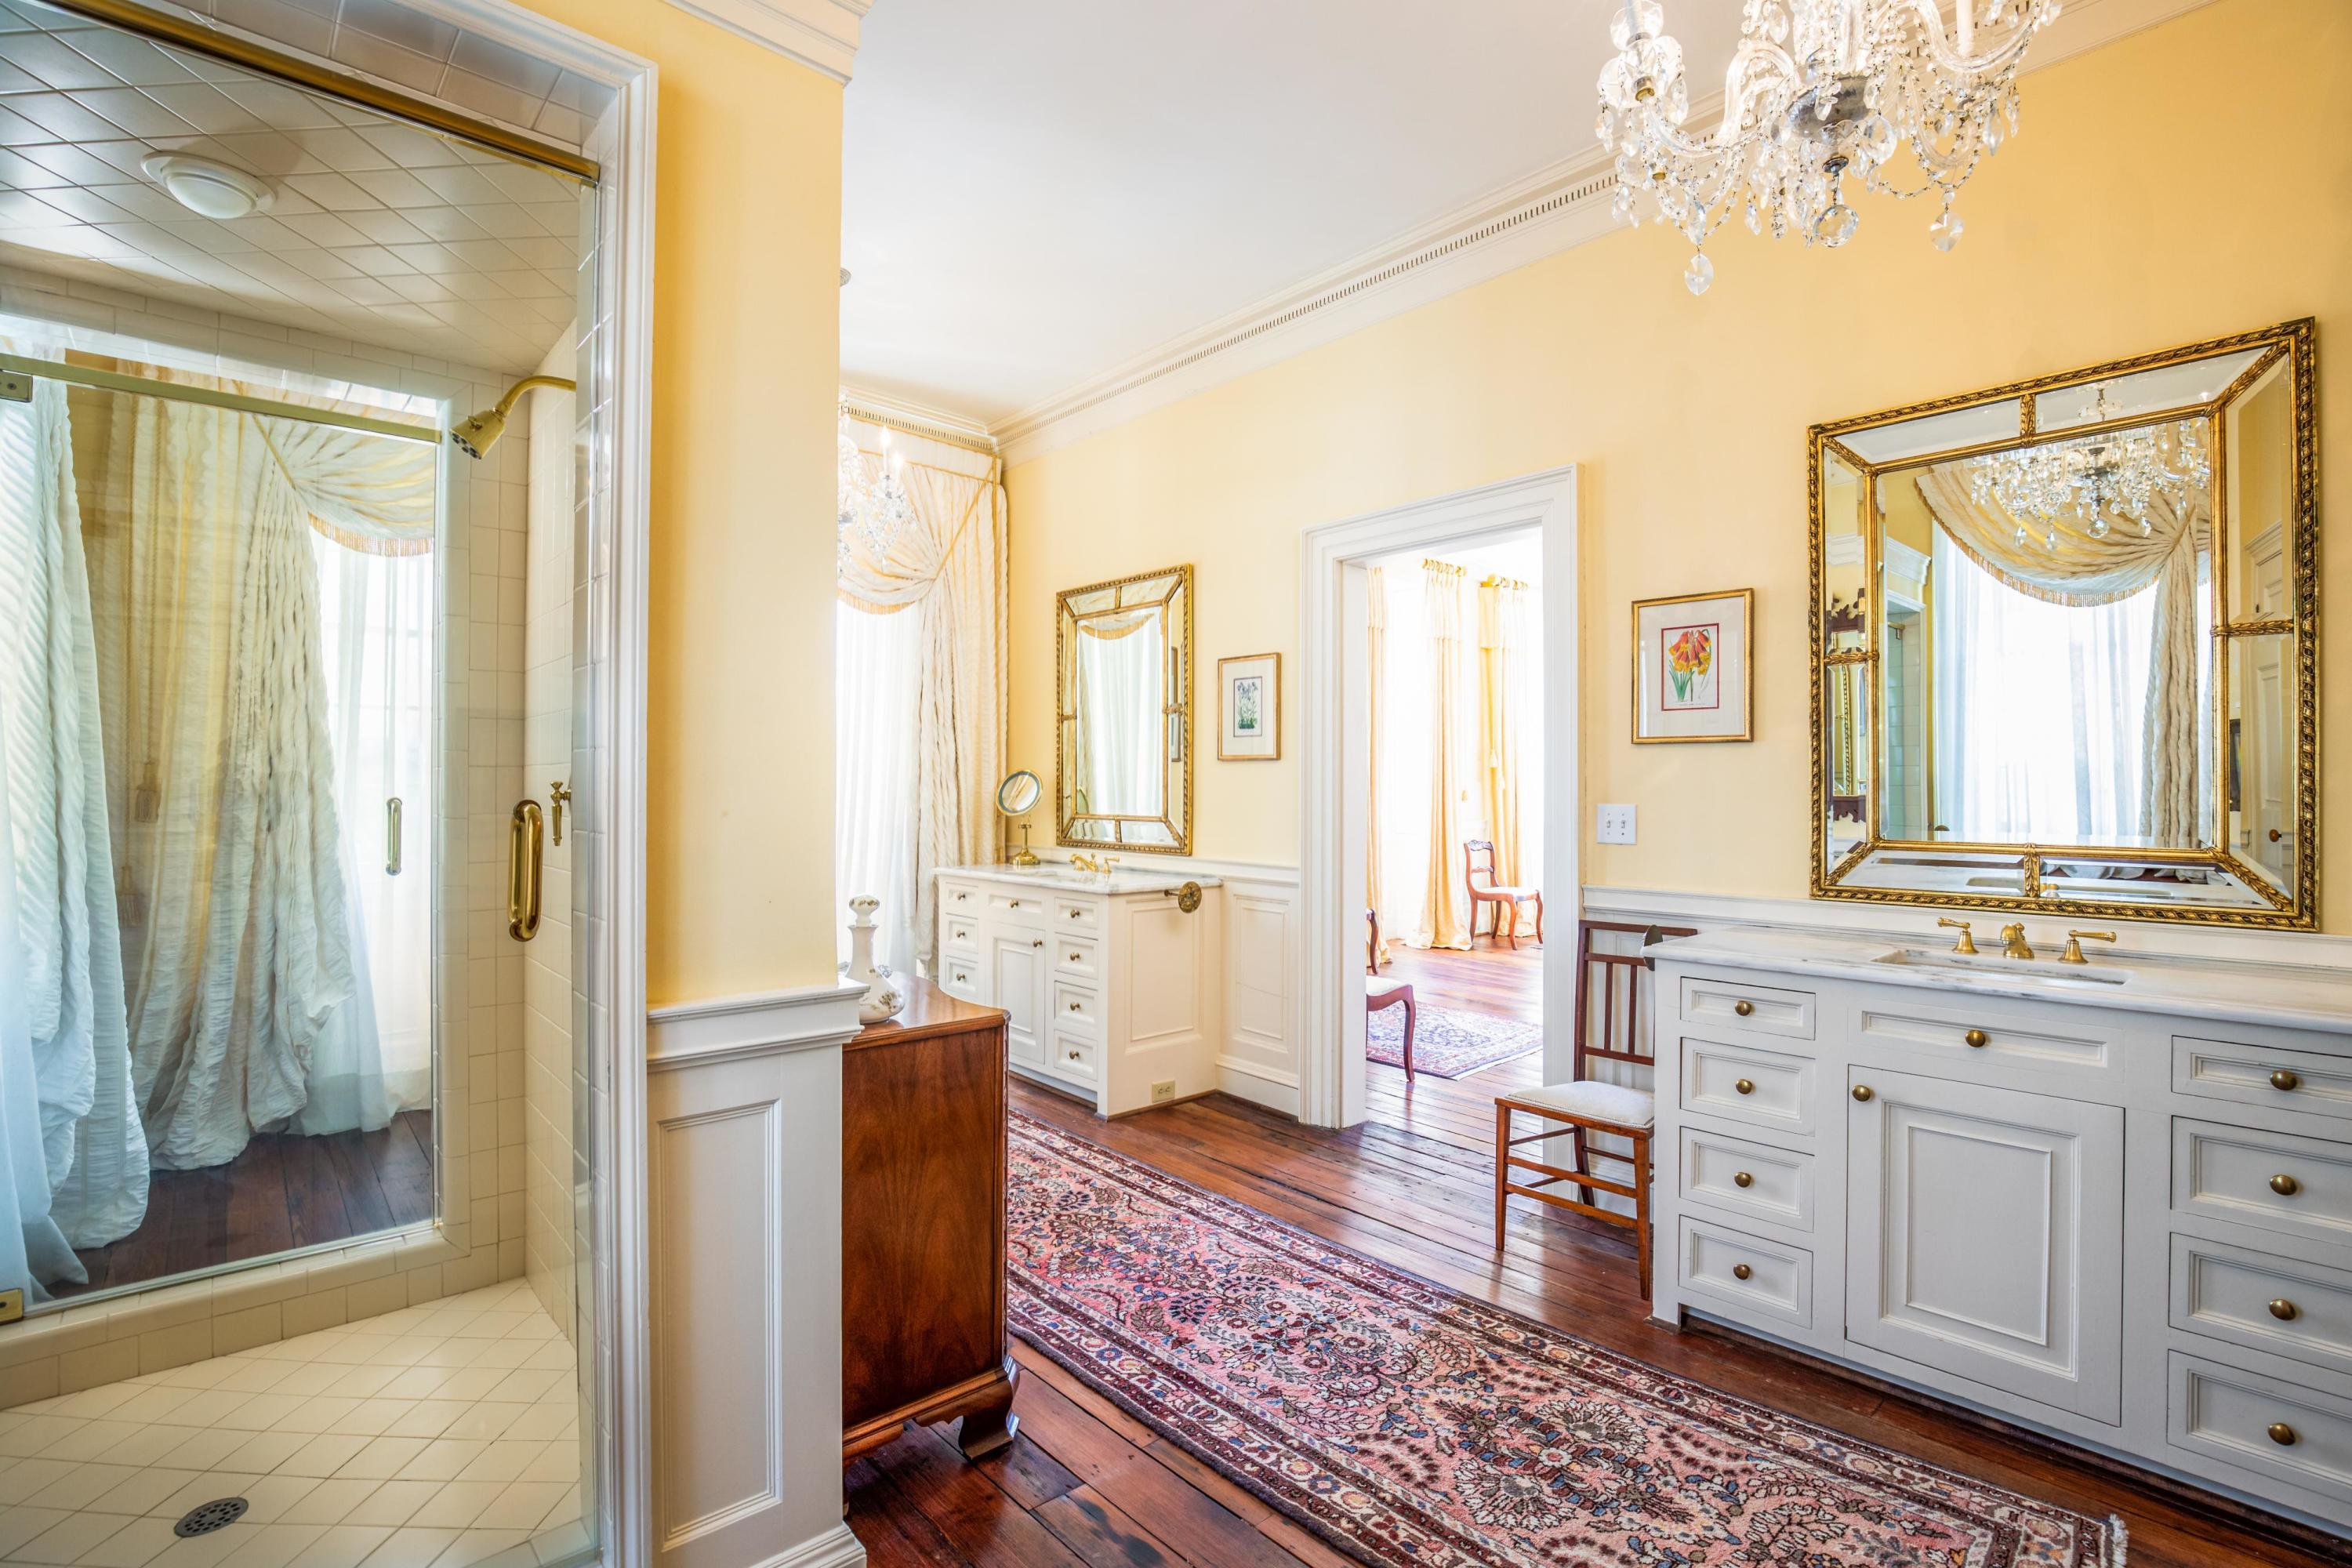 South of Broad Homes For Sale - 69 Church, Charleston, SC - 74